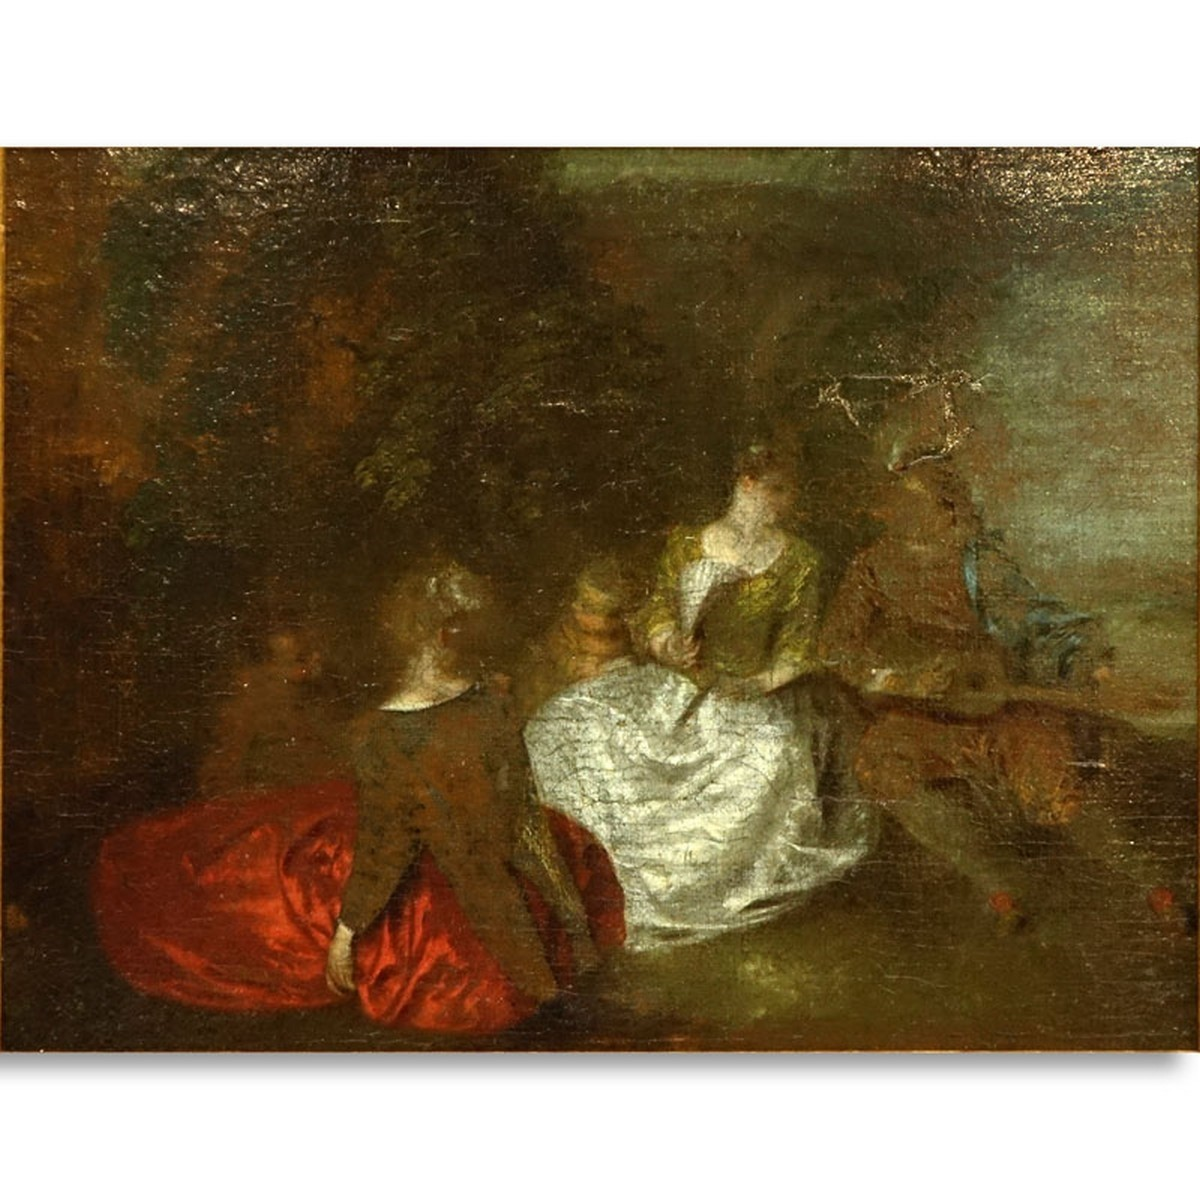 Antoine Watteau (1684 - 1721) Oil on Canvas